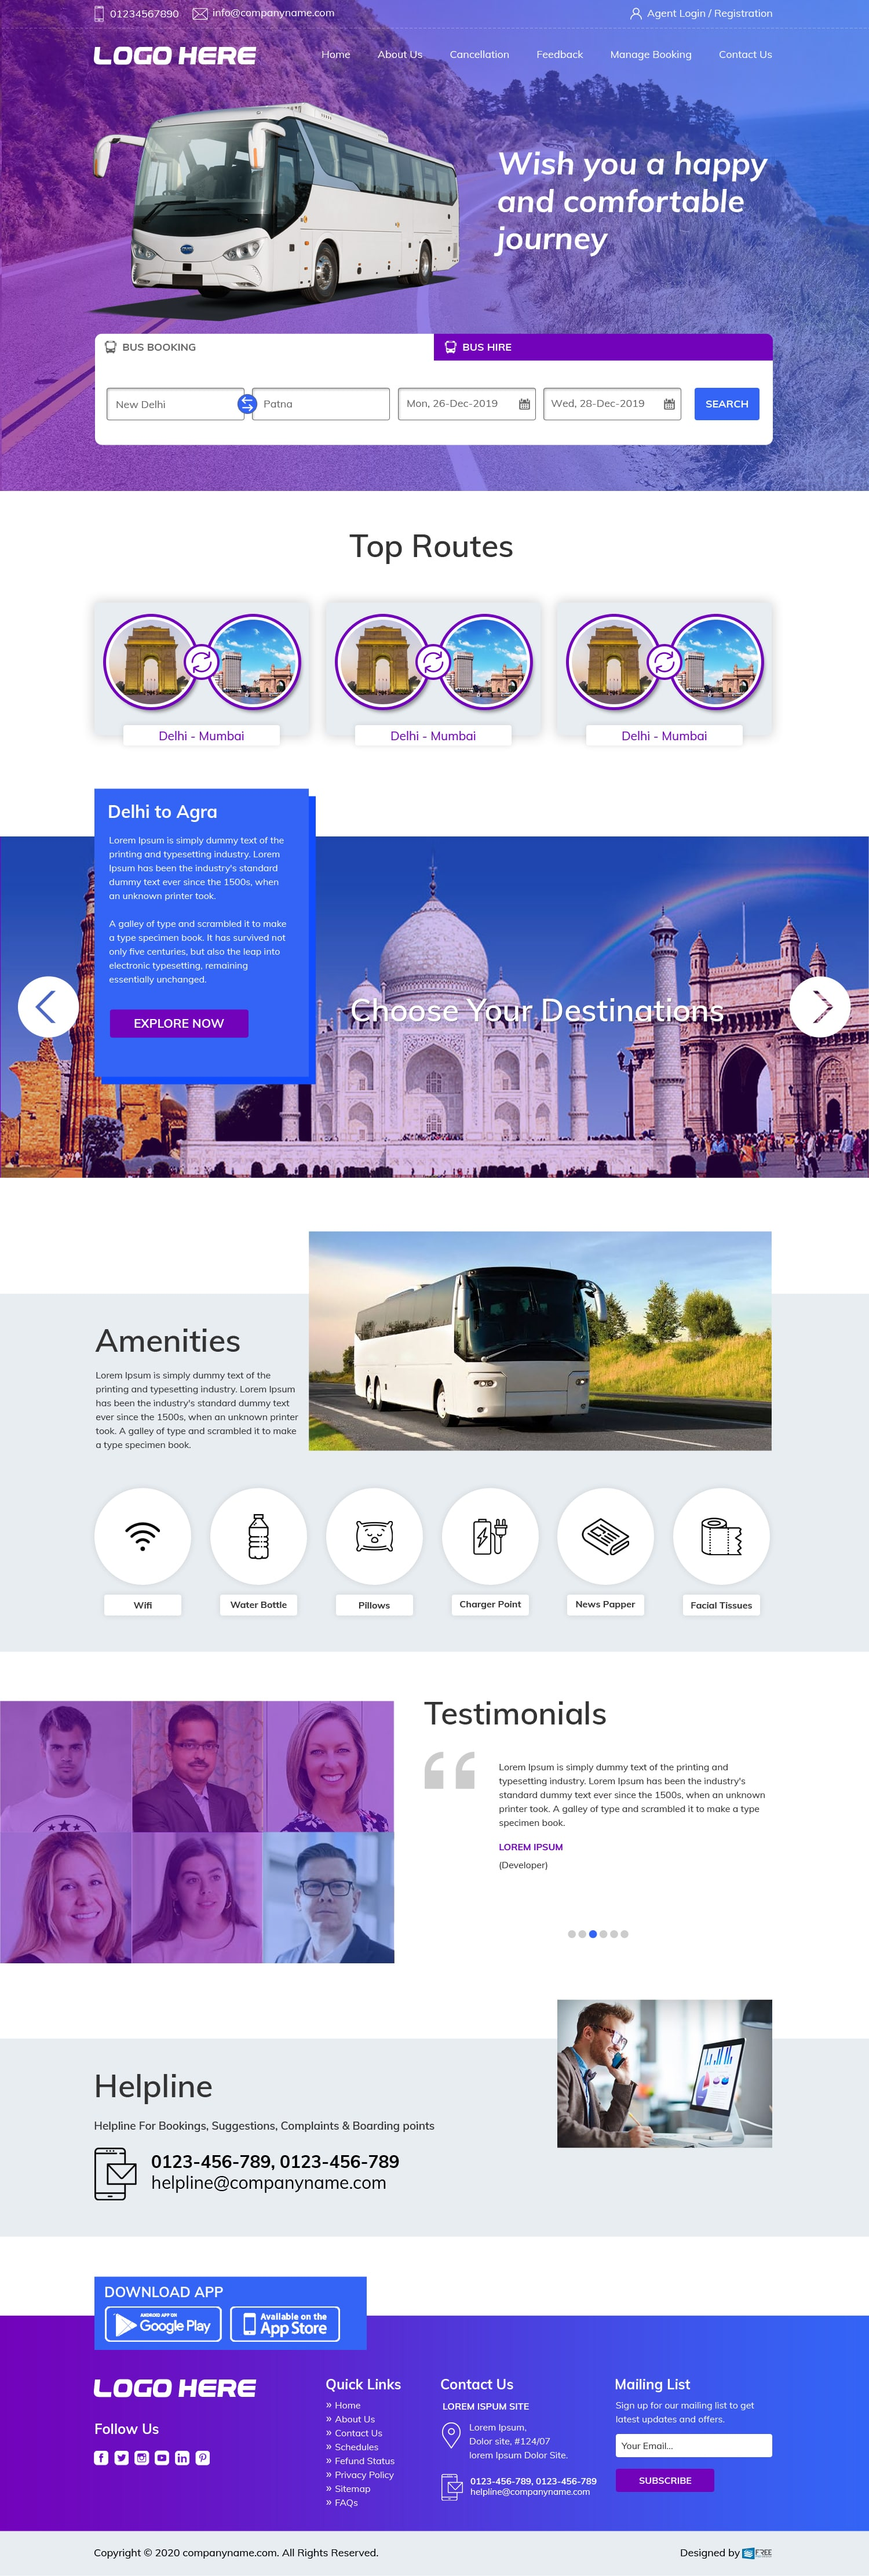 Travel Agency Website Landing Page